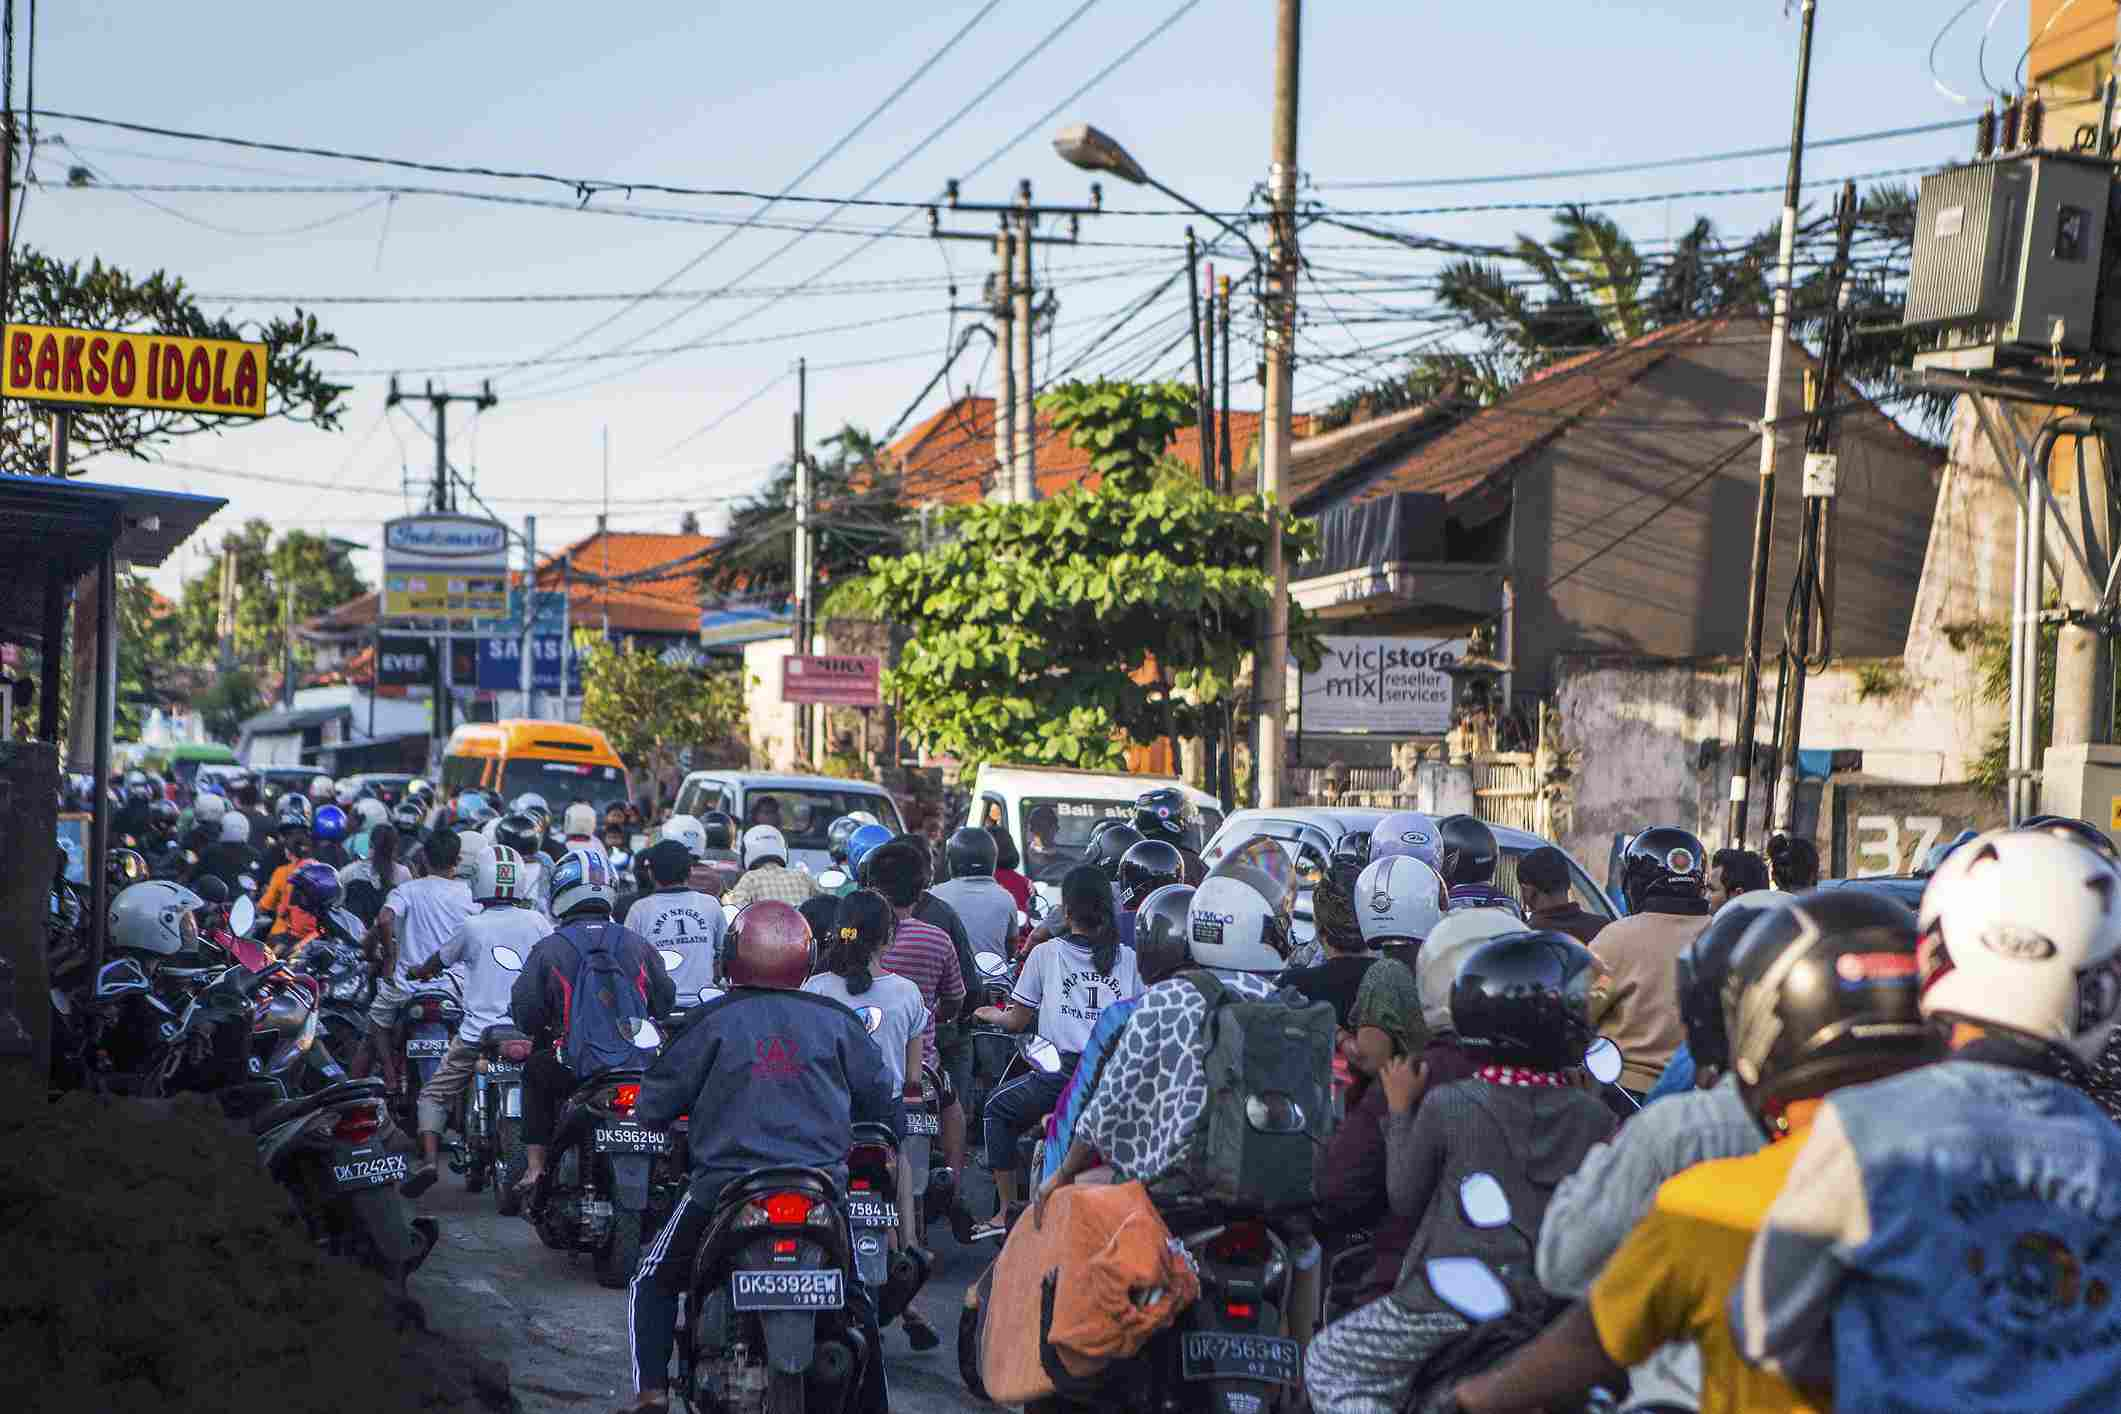 The streets of Bali are notorious for their traffic.